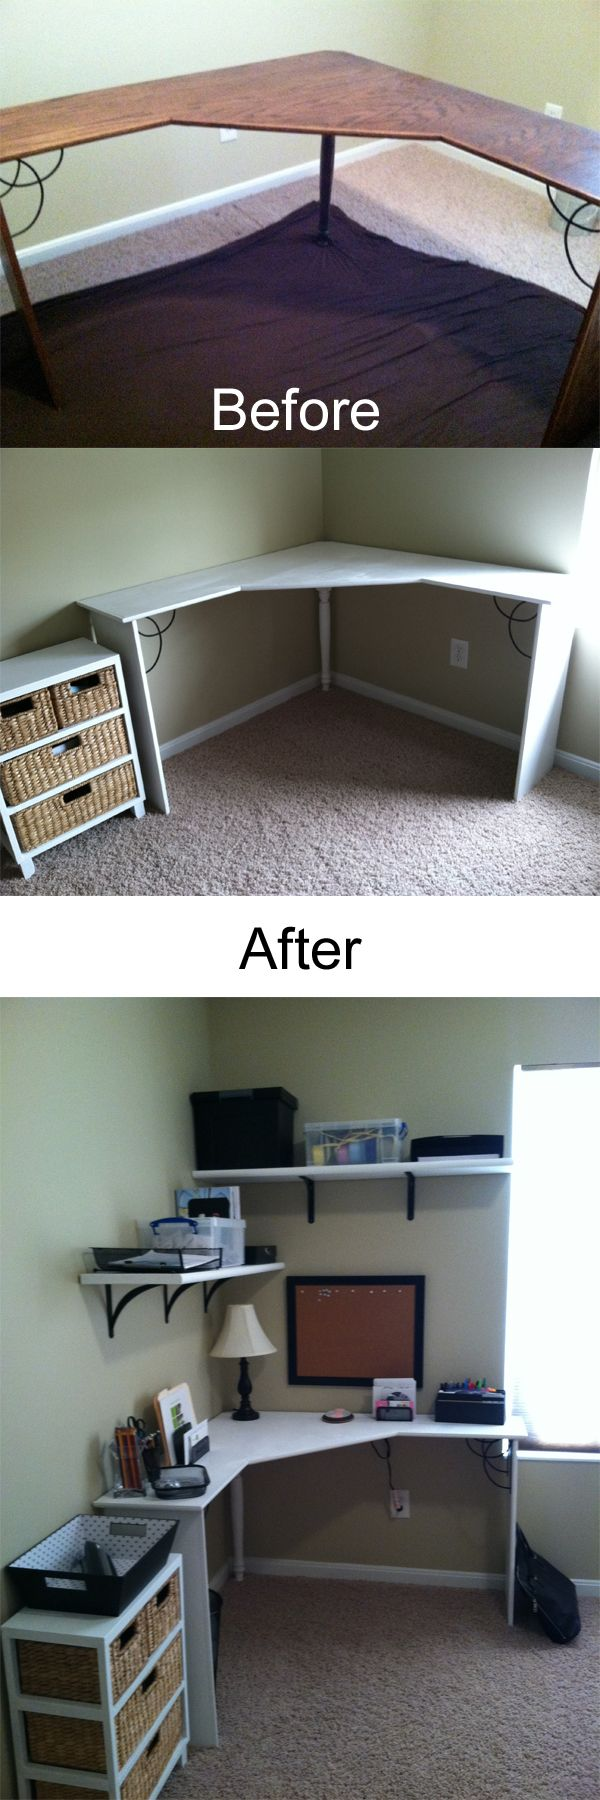 This looks a LOT like our office room... handy dandy little ideas here...